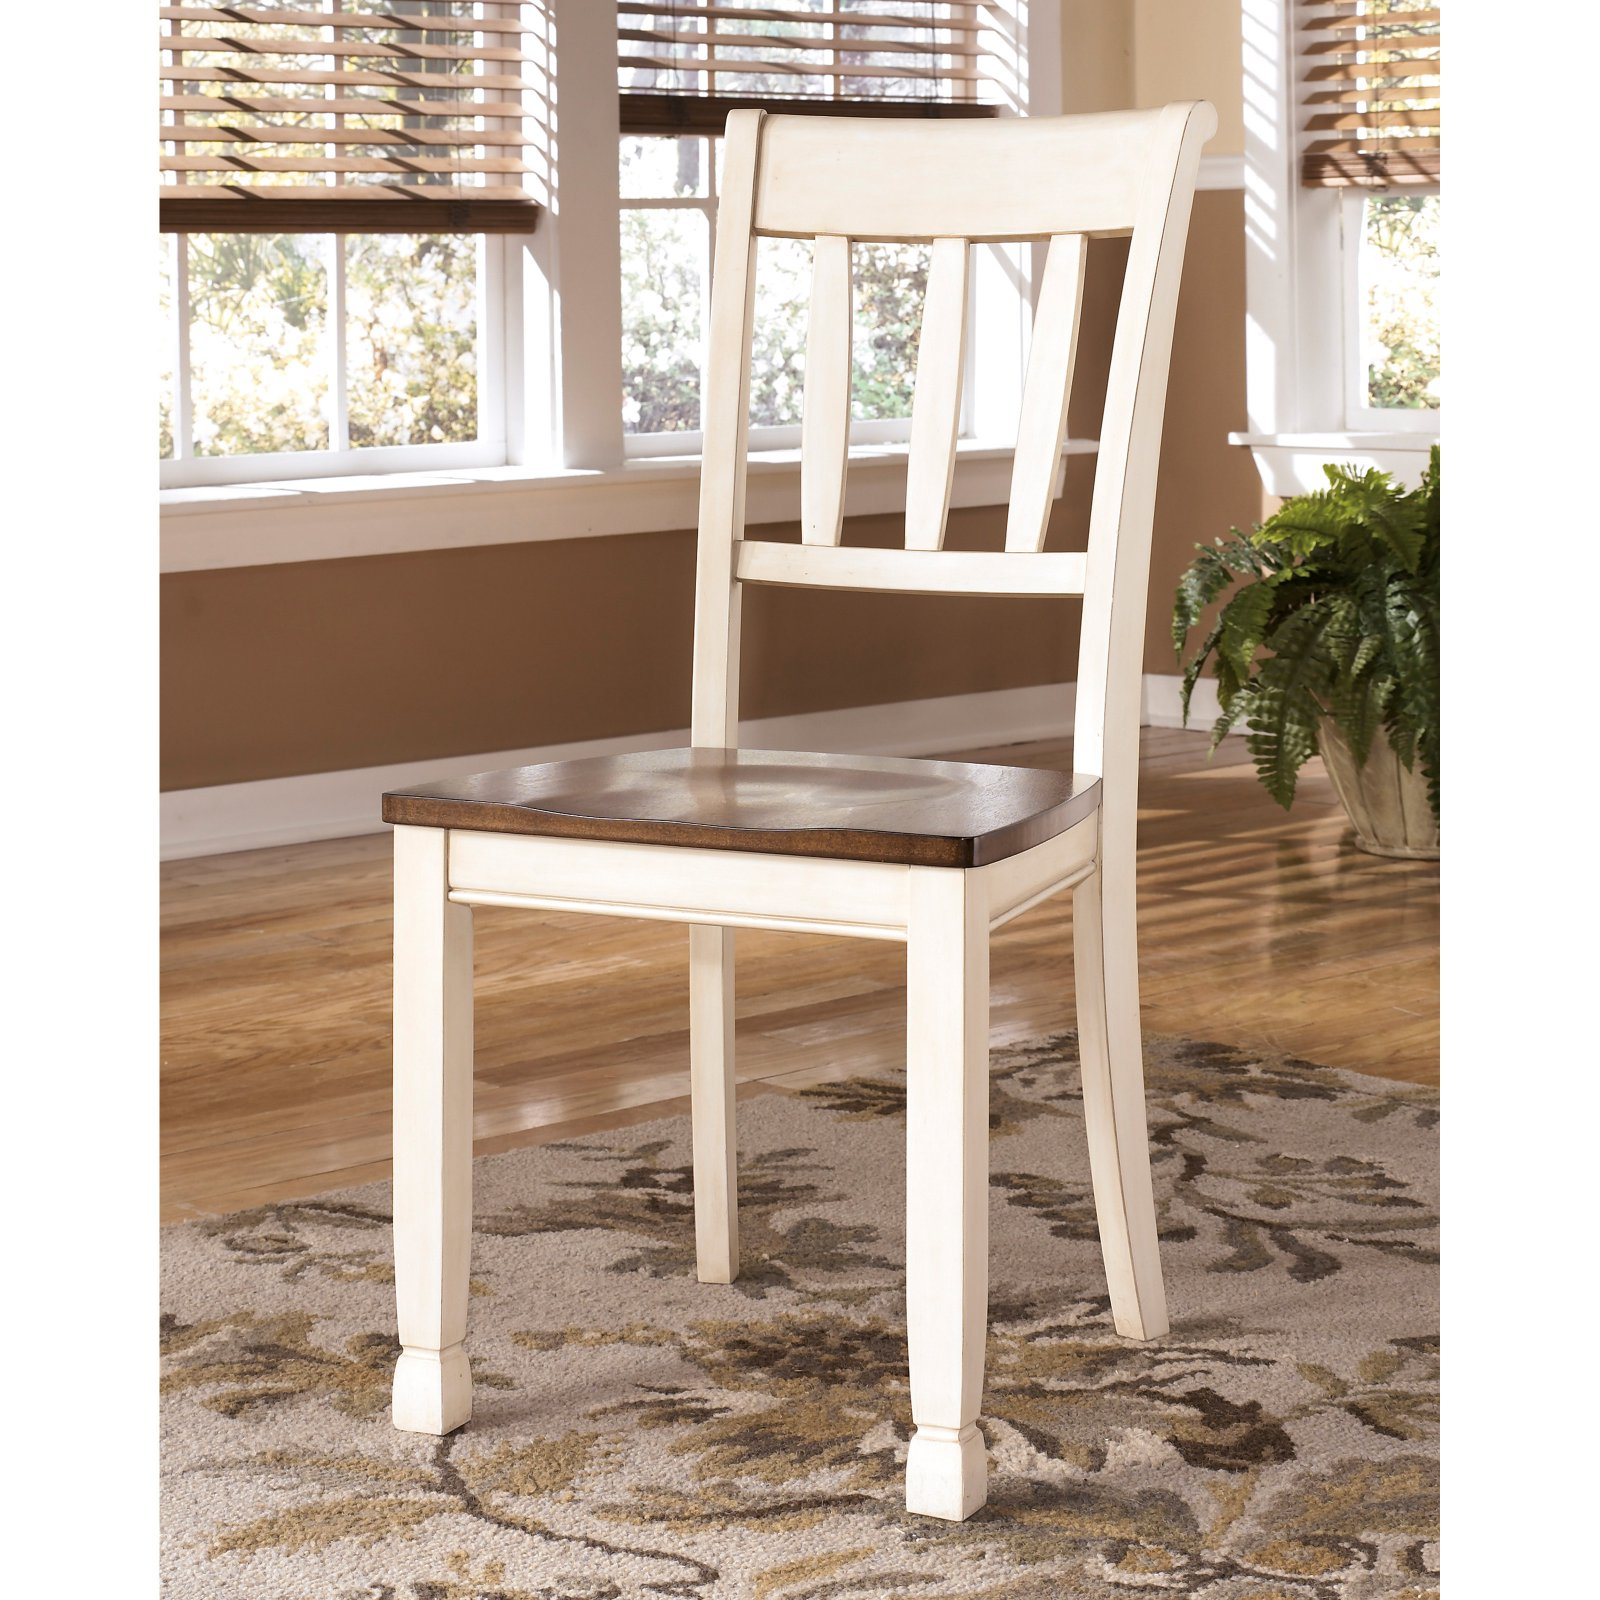 Signature Design by Ashley Whitesburg Dining Side Chairs - Set of 2